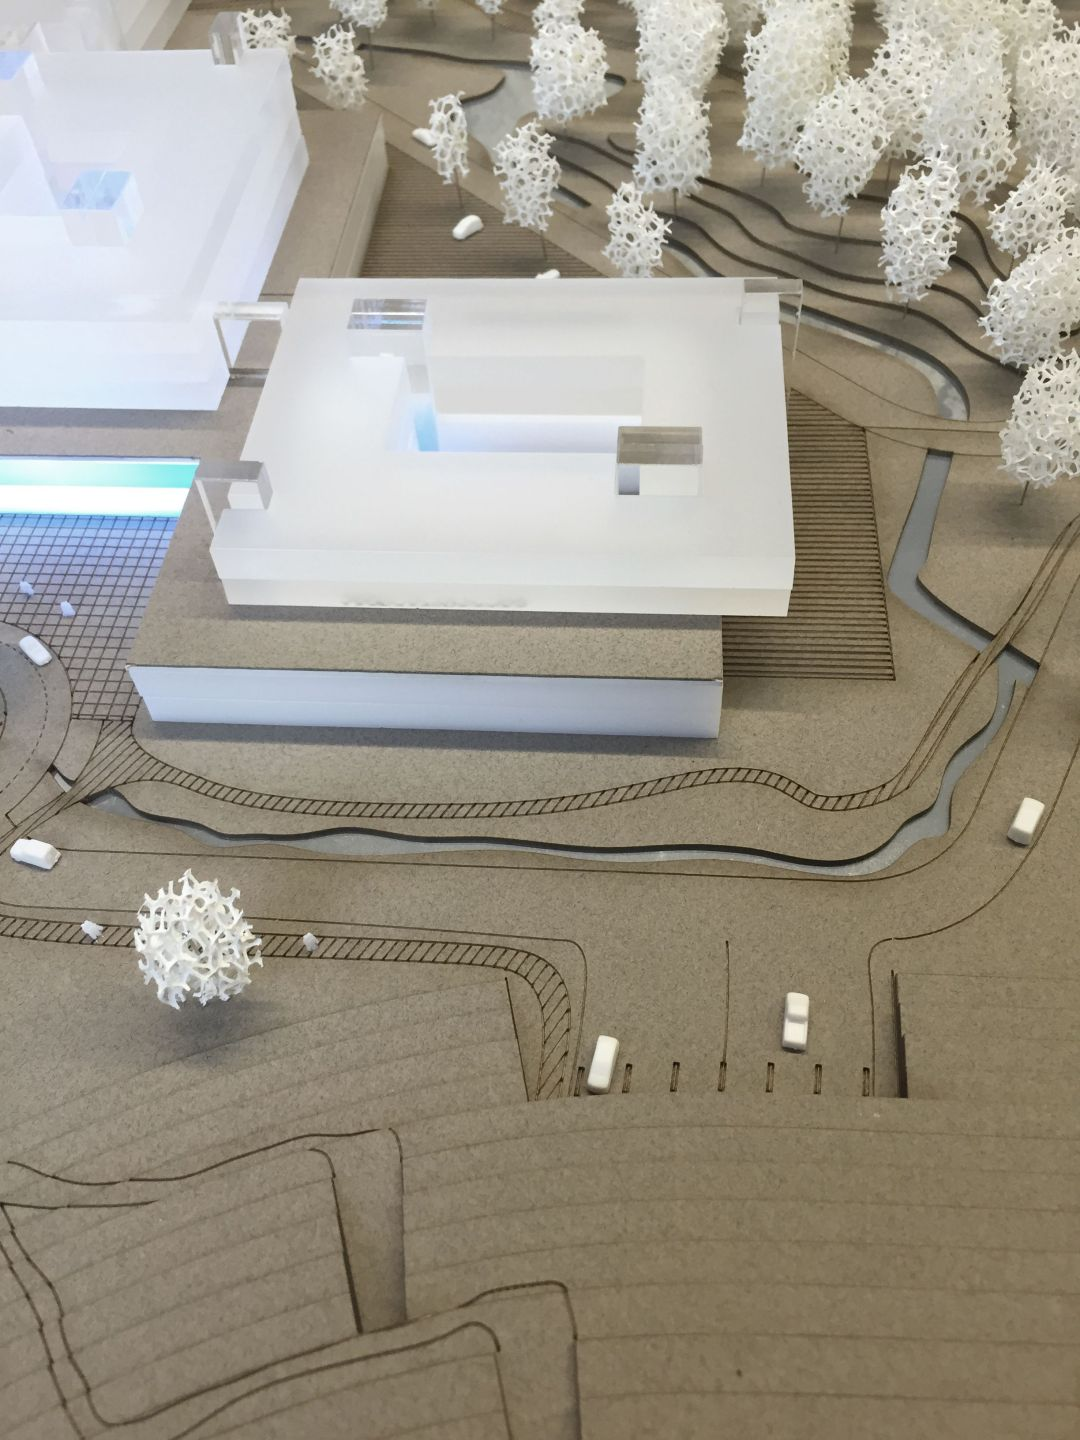 Competition design as part of Open Call 2901 / hospital, indoor car park, outdoor areas